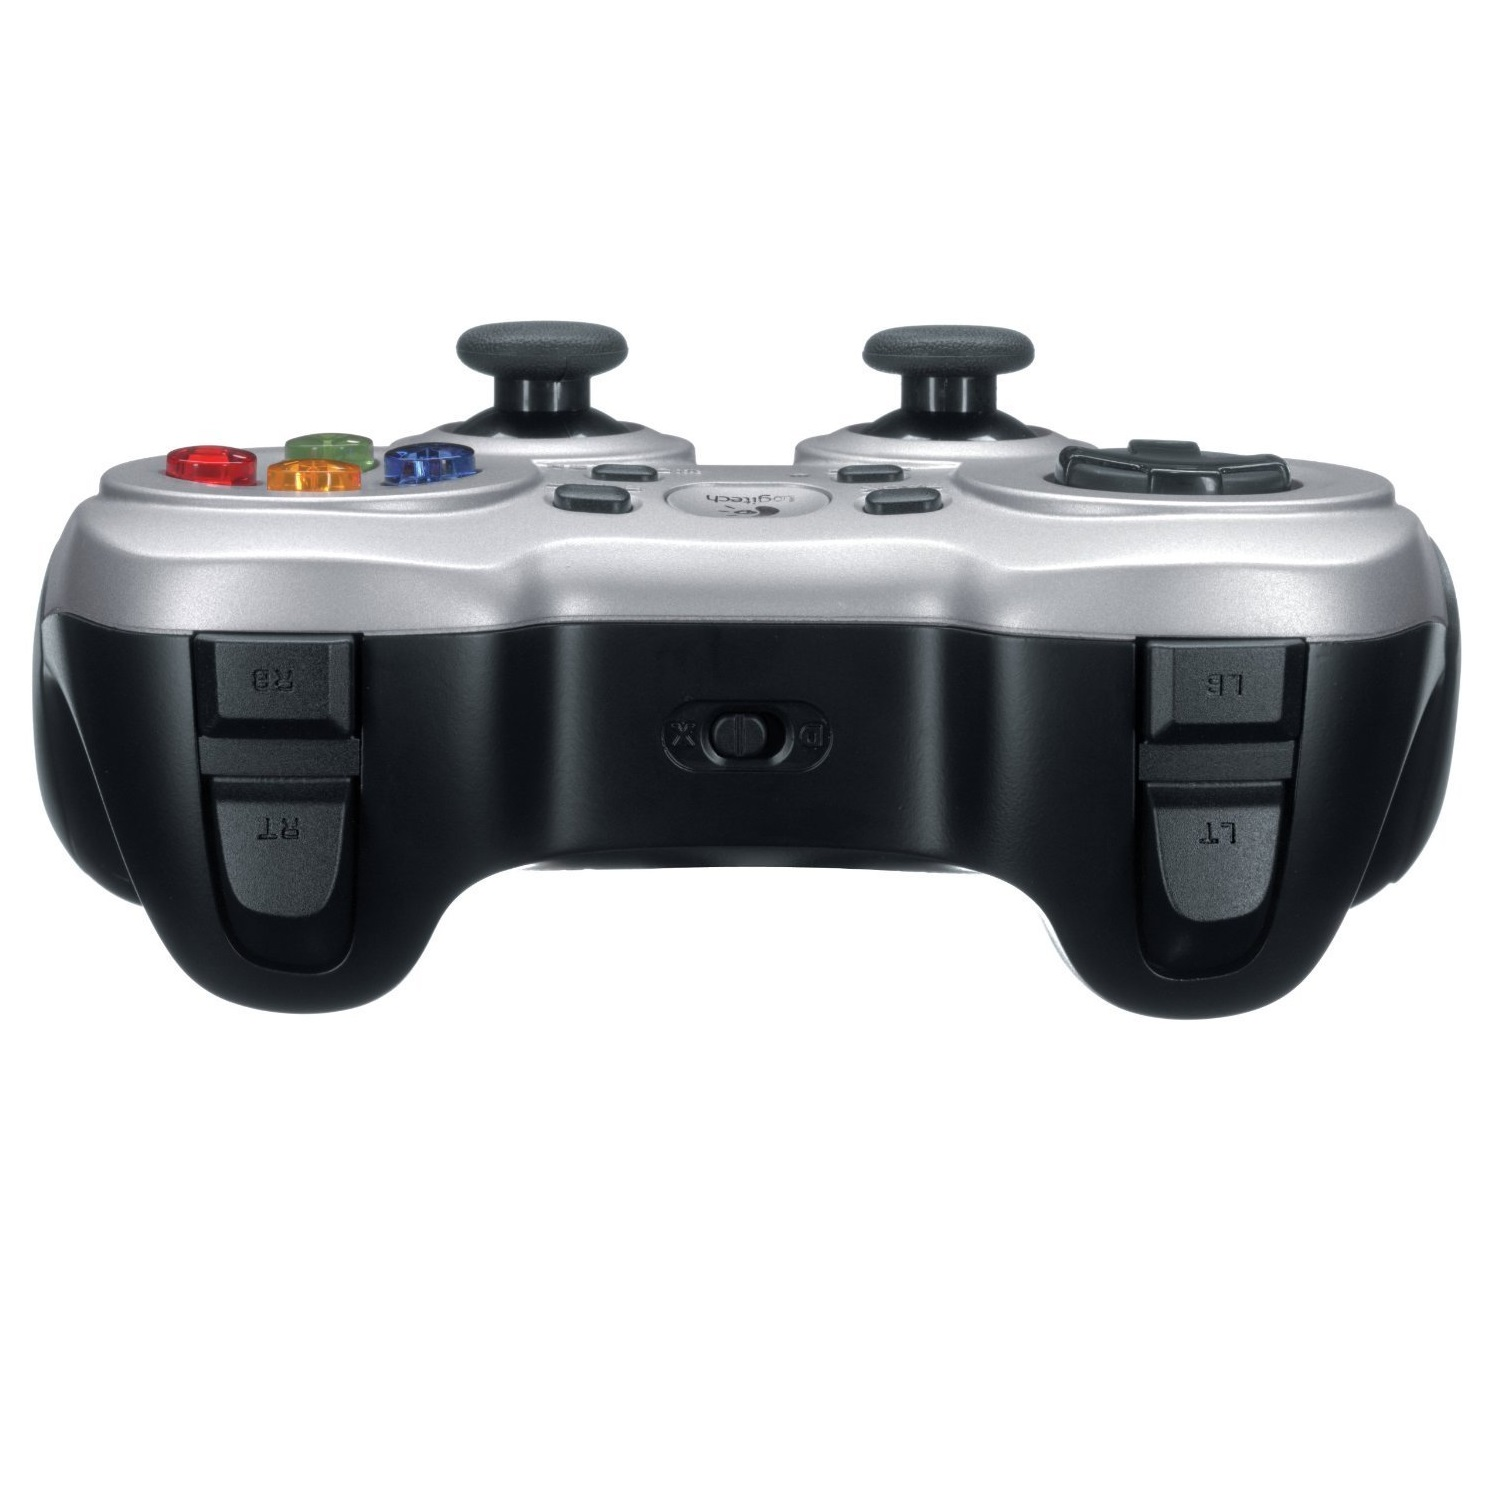 Logitech-Gamepad-Wired-Wireless-Gaming-Controller-All-Model-For-PC-Android-TV-VS thumbnail 11